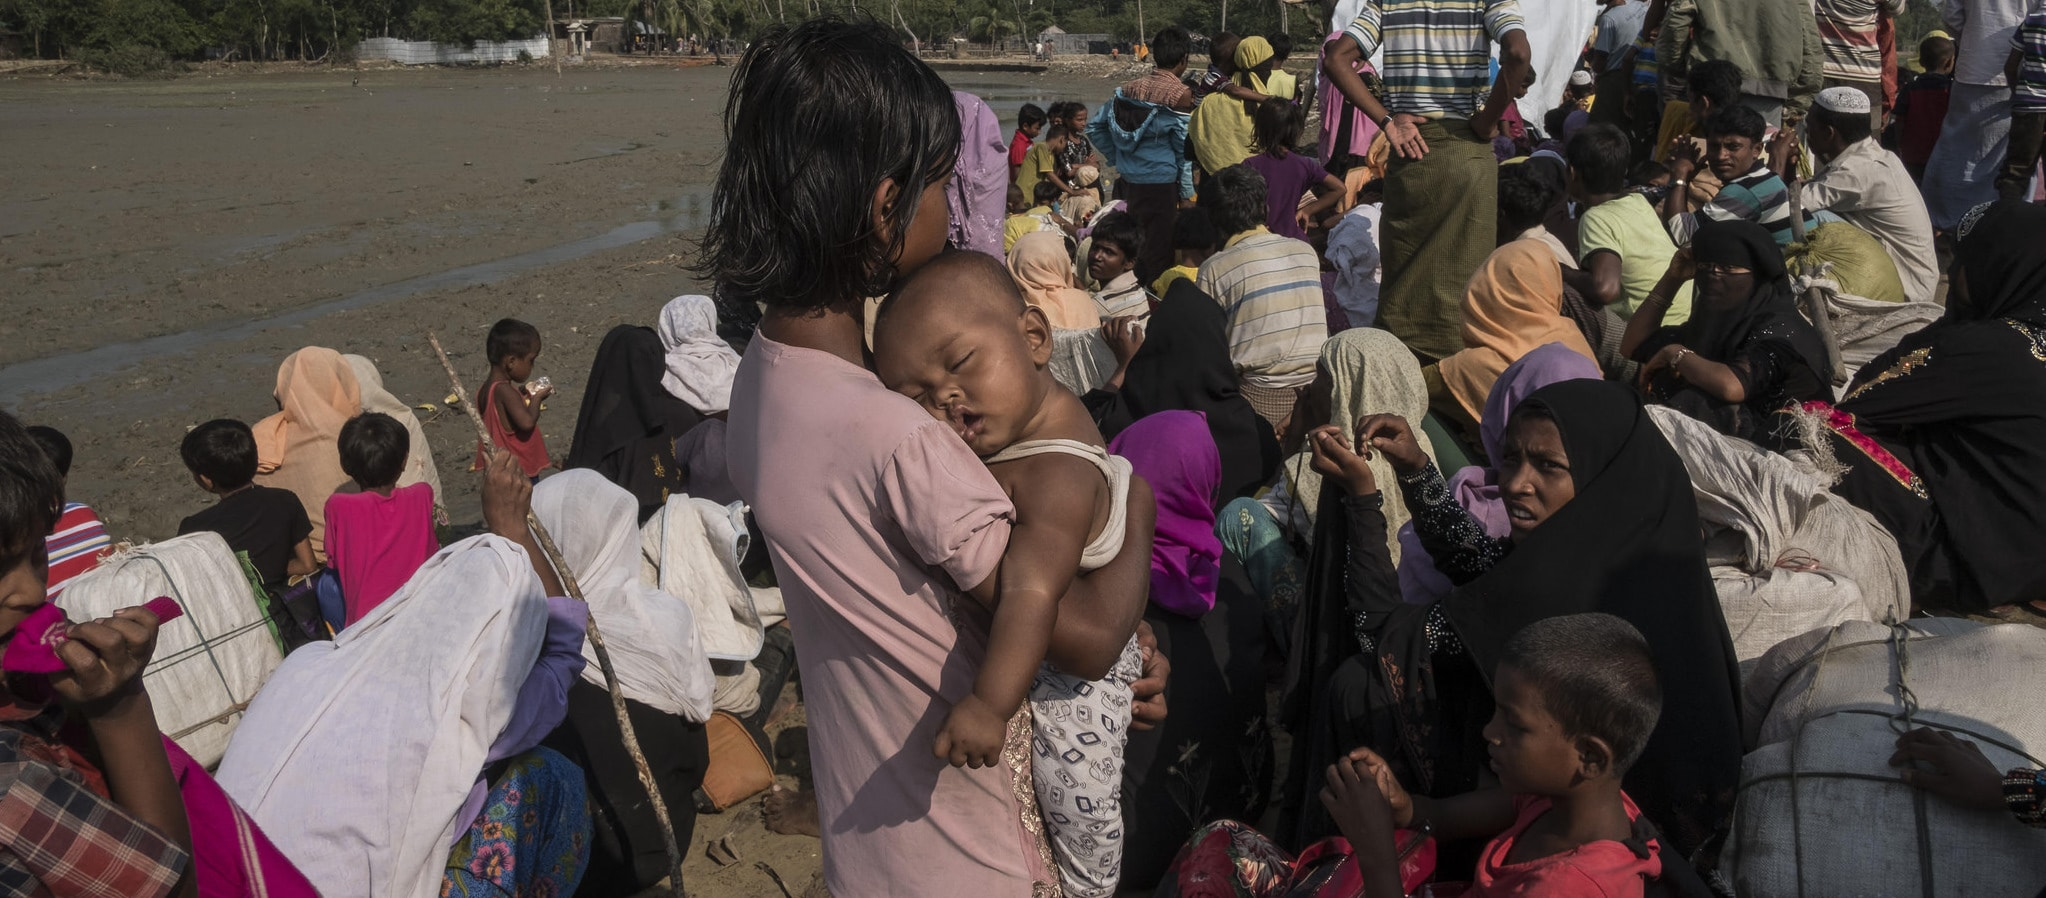 Newly arrived refugees from Myanmar on the Bangladesh border (Photo: Mahmud Rahman/Caritas Bangladesh/Flickr)